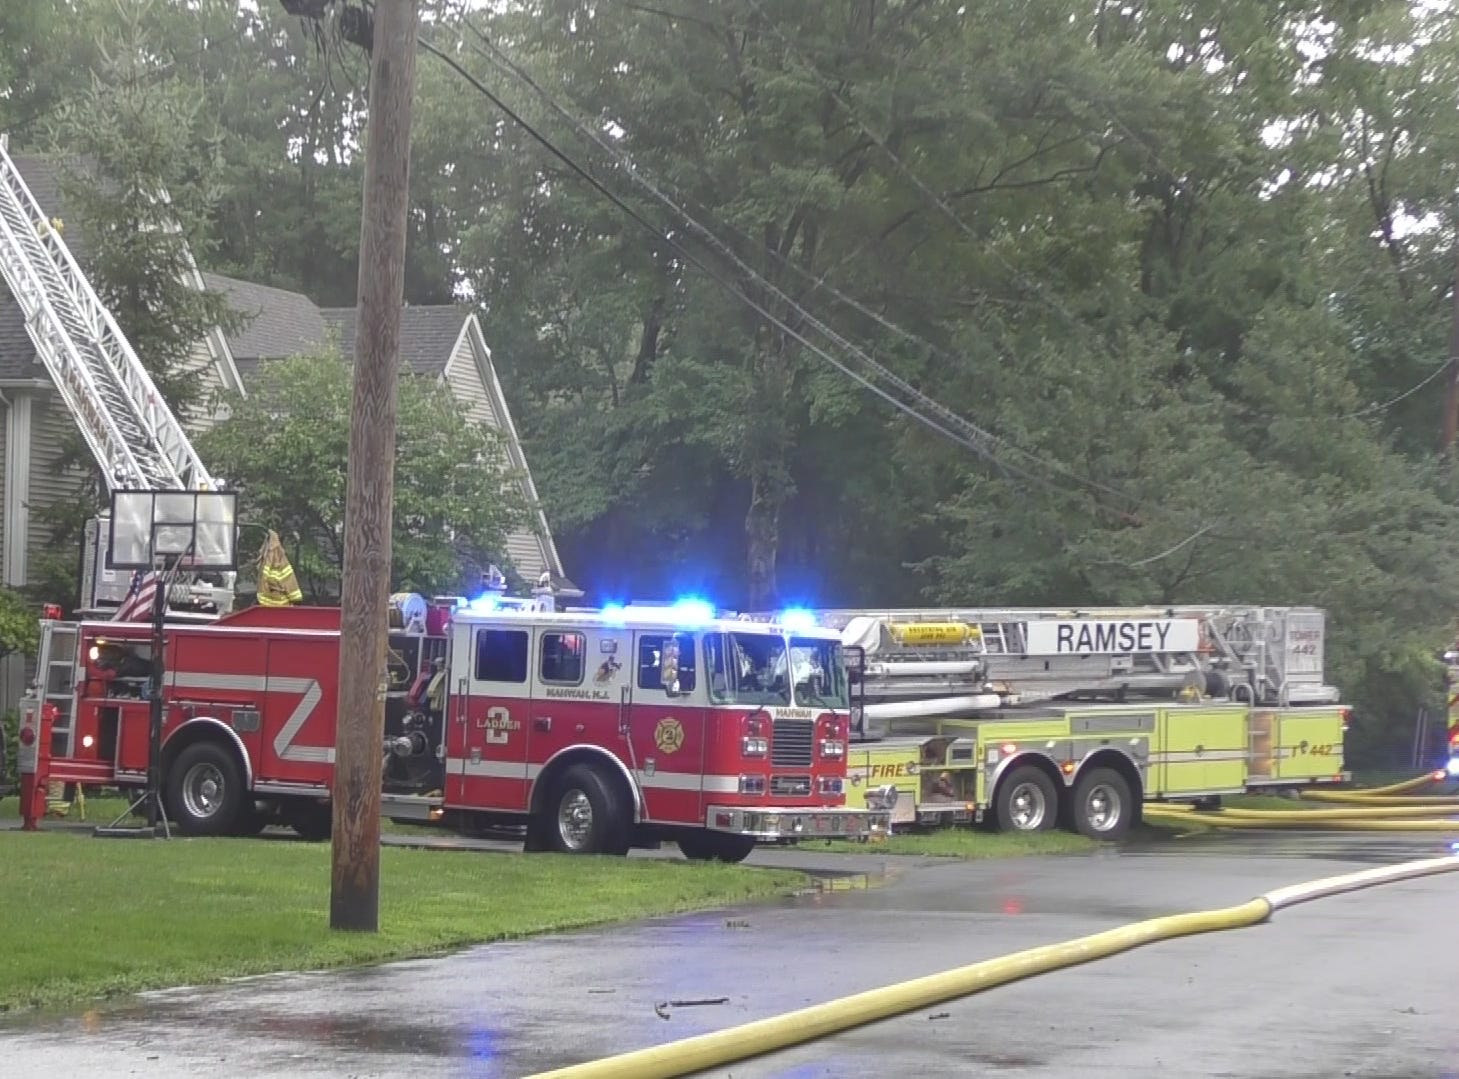 A house was struck by lightning in Ramsey Aug. 3, 2018.